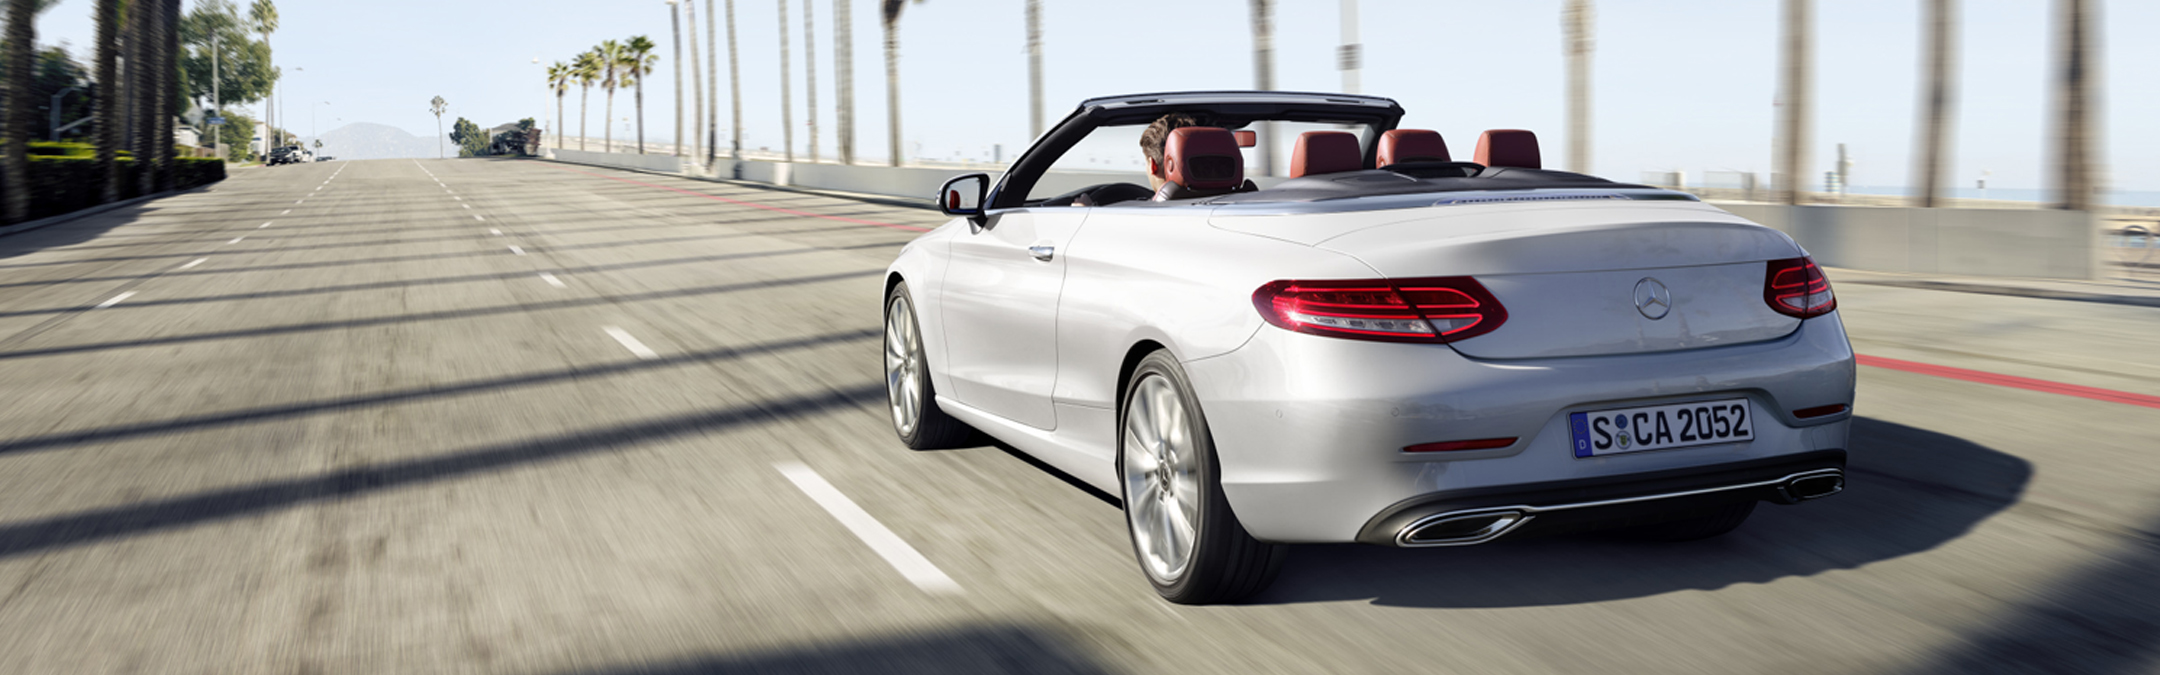 HEADER PERFORMANCE CLASE C CONVERTIBLE